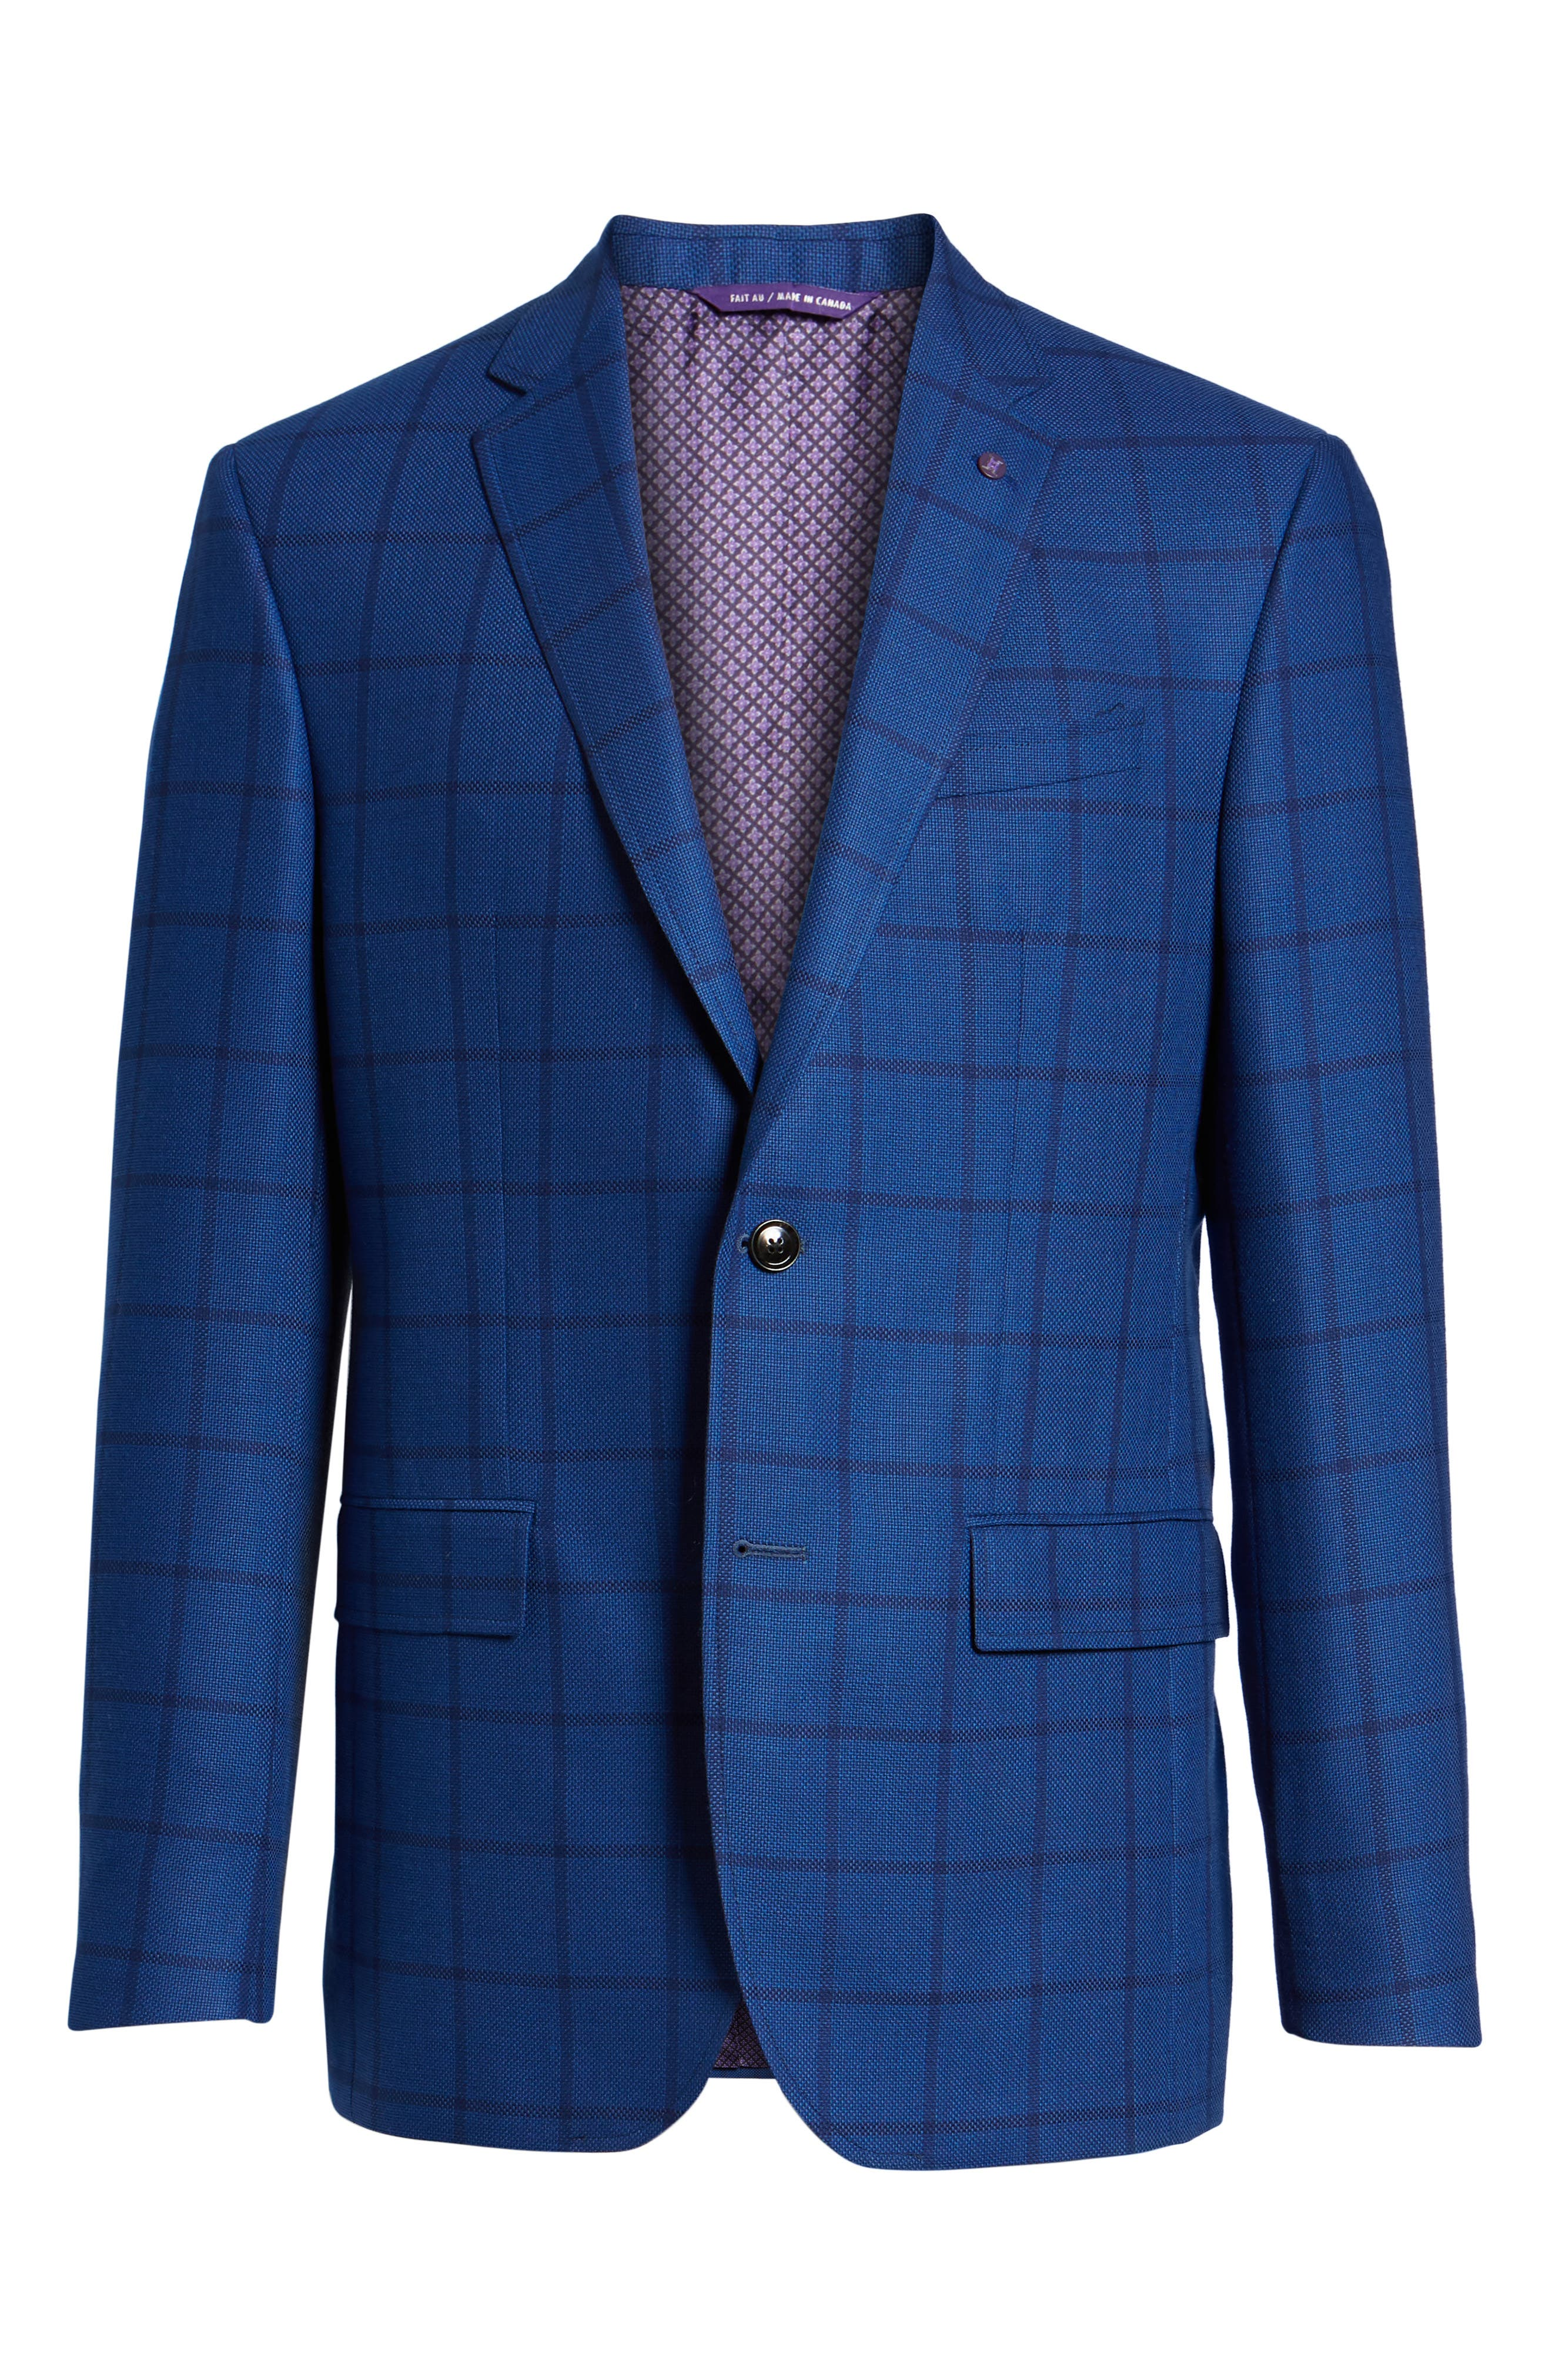 Jay Trim Fit Windowpane Wool Sport Coat,                             Alternate thumbnail 6, color,                             Blue